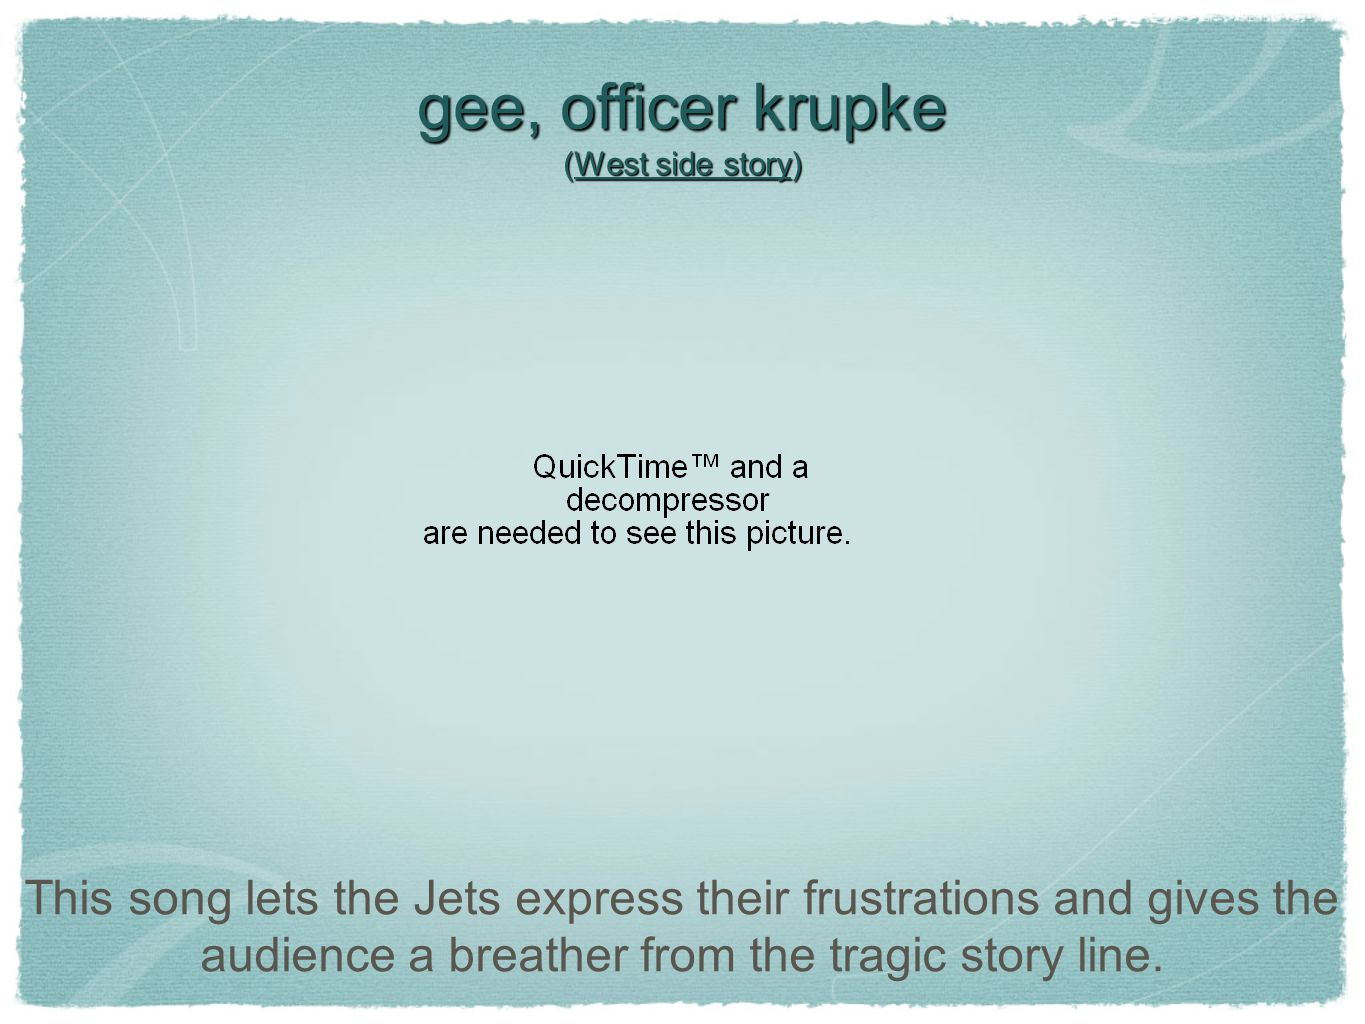 gee, officer krupke (West side story) This song lets the Jets express their frustrations and gives the audience a breather from the tragic story line.